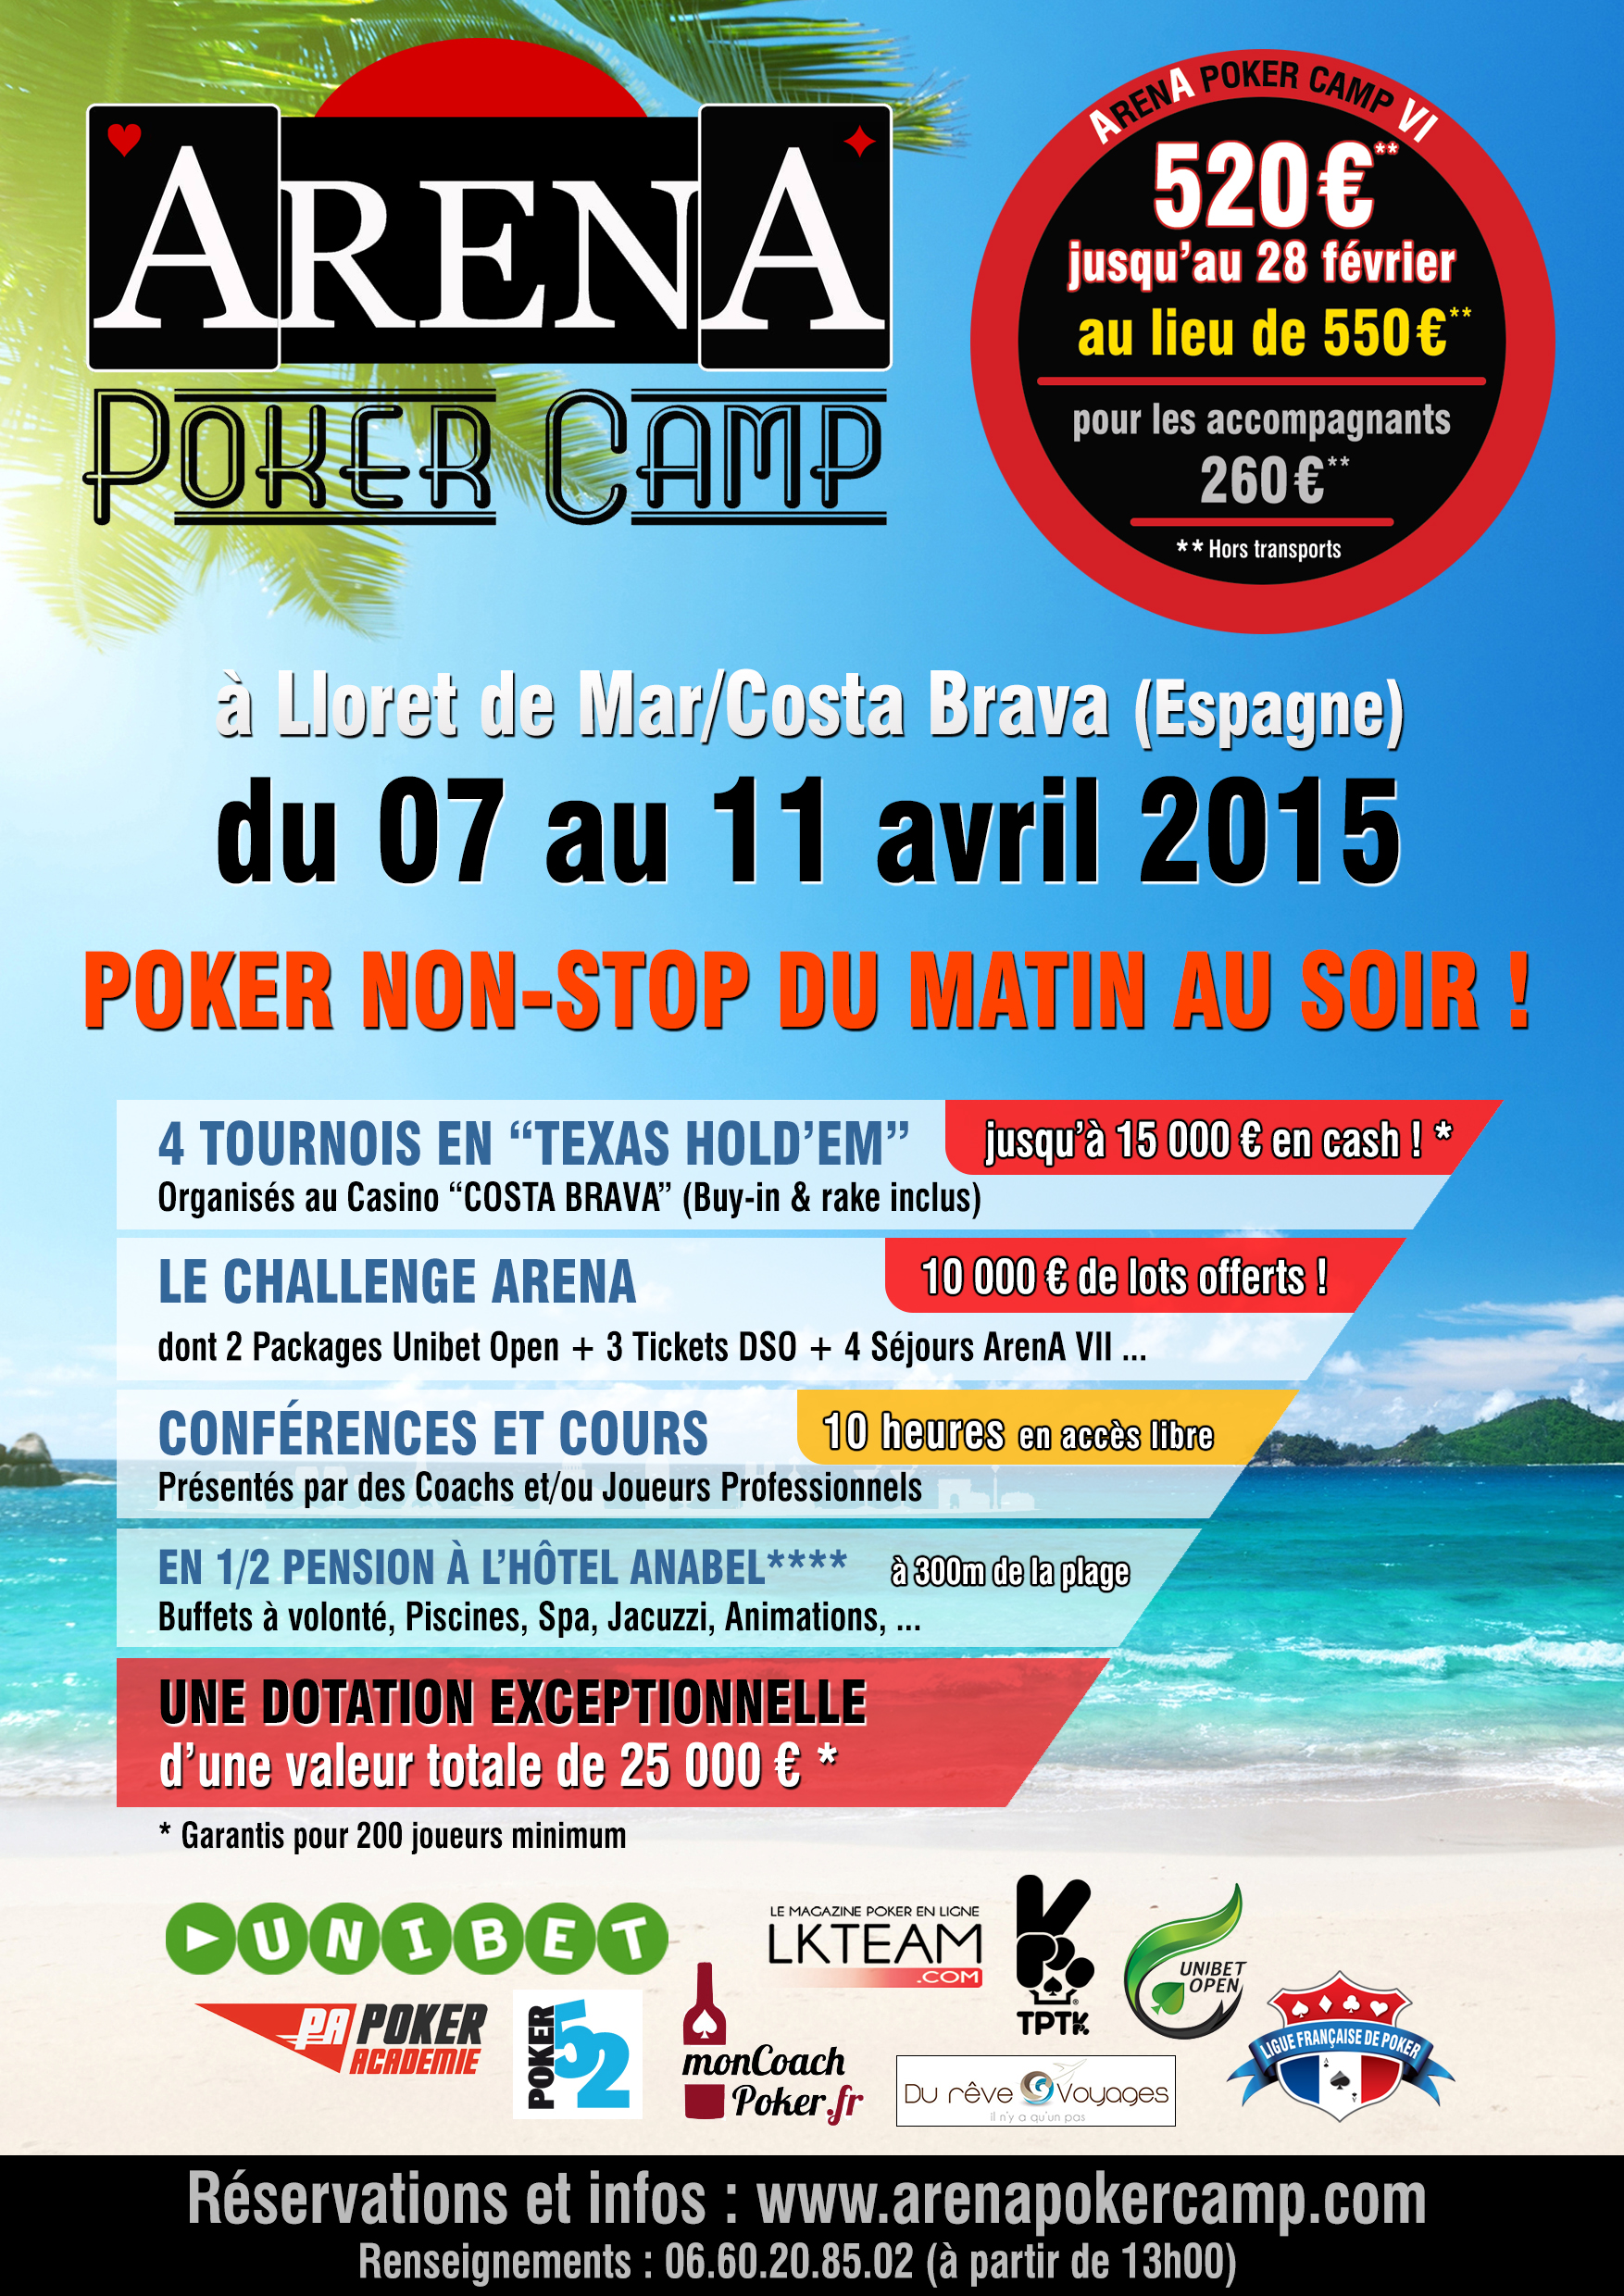 Affiche Arena Poker CAMP VI